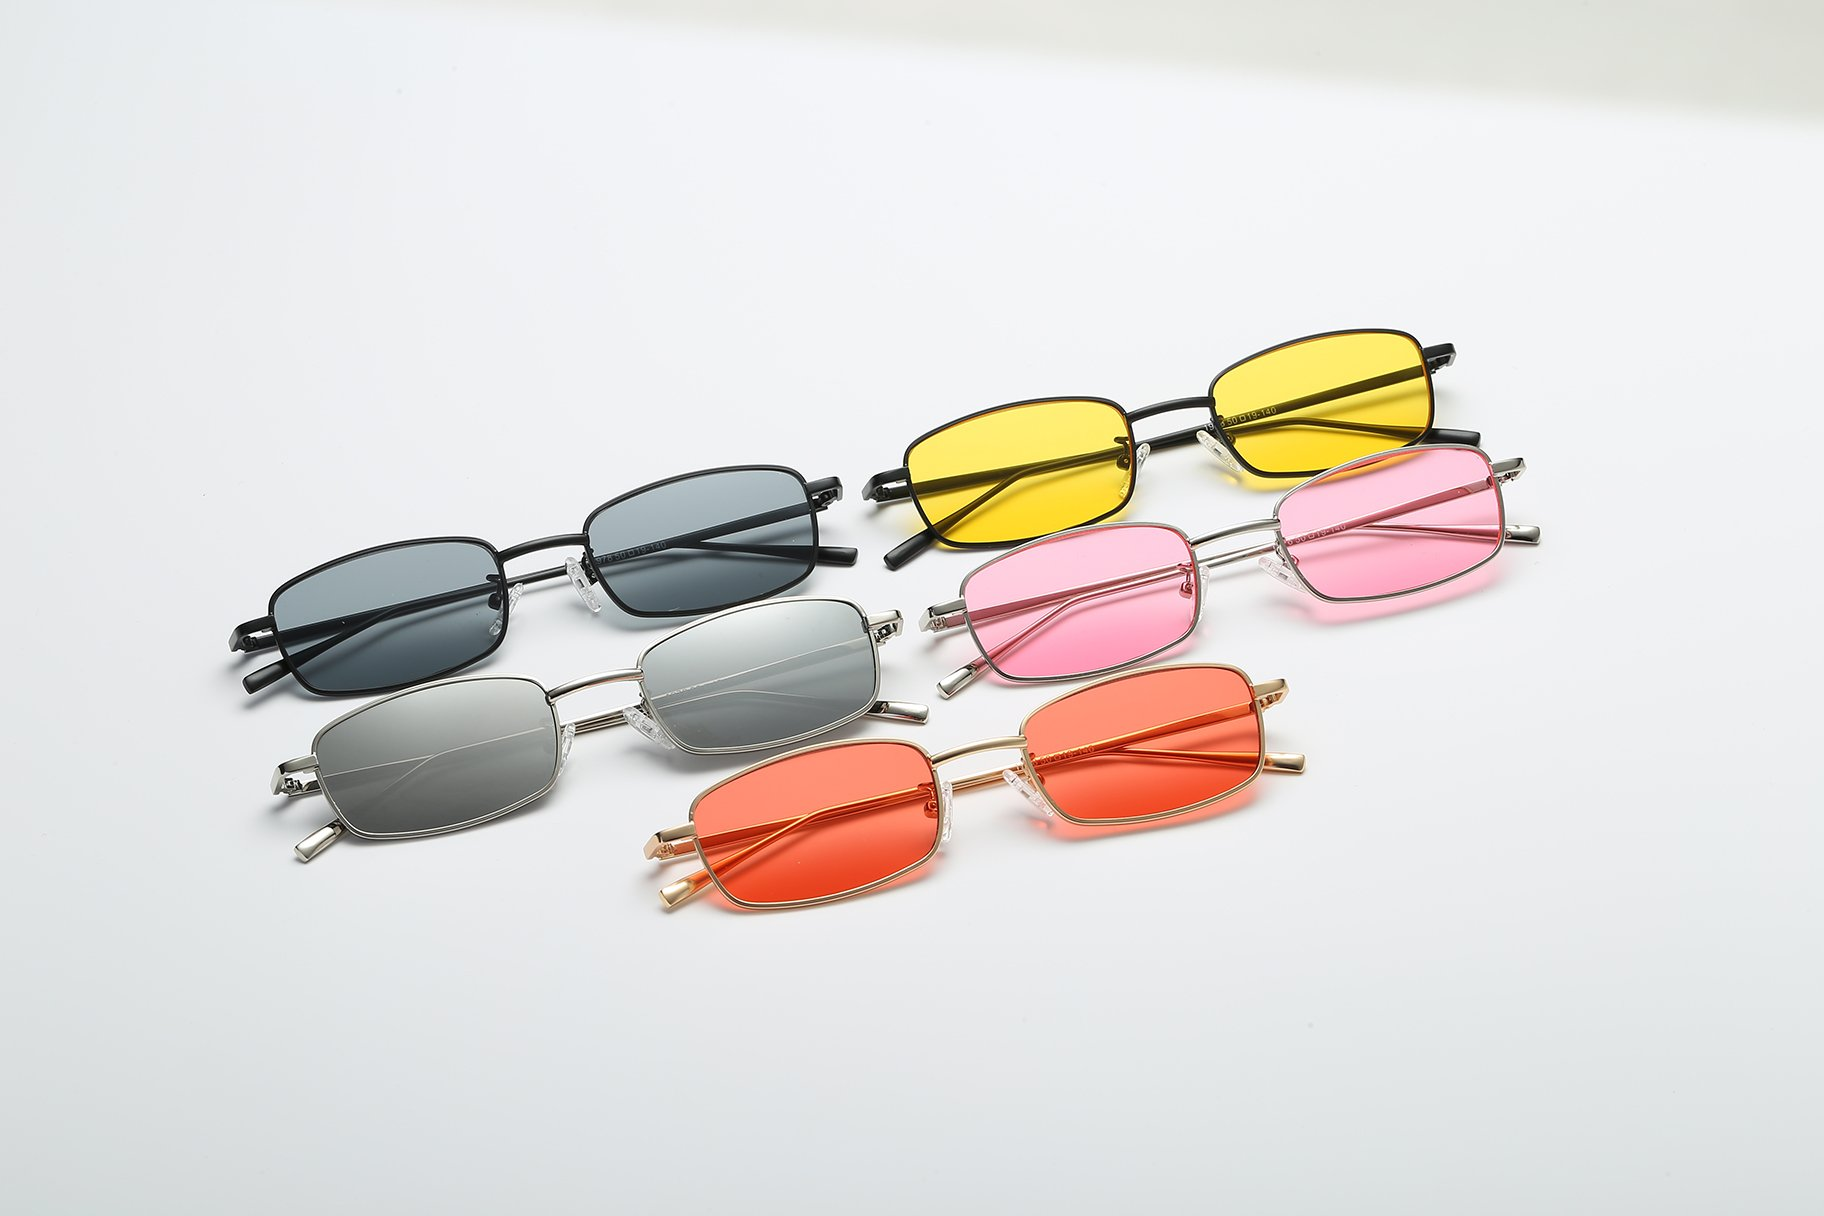 ae999b84b5872 FEISEDY Vintage Slender Square Sunglasses Retro Small Metal Frame Candy  Colors B2295